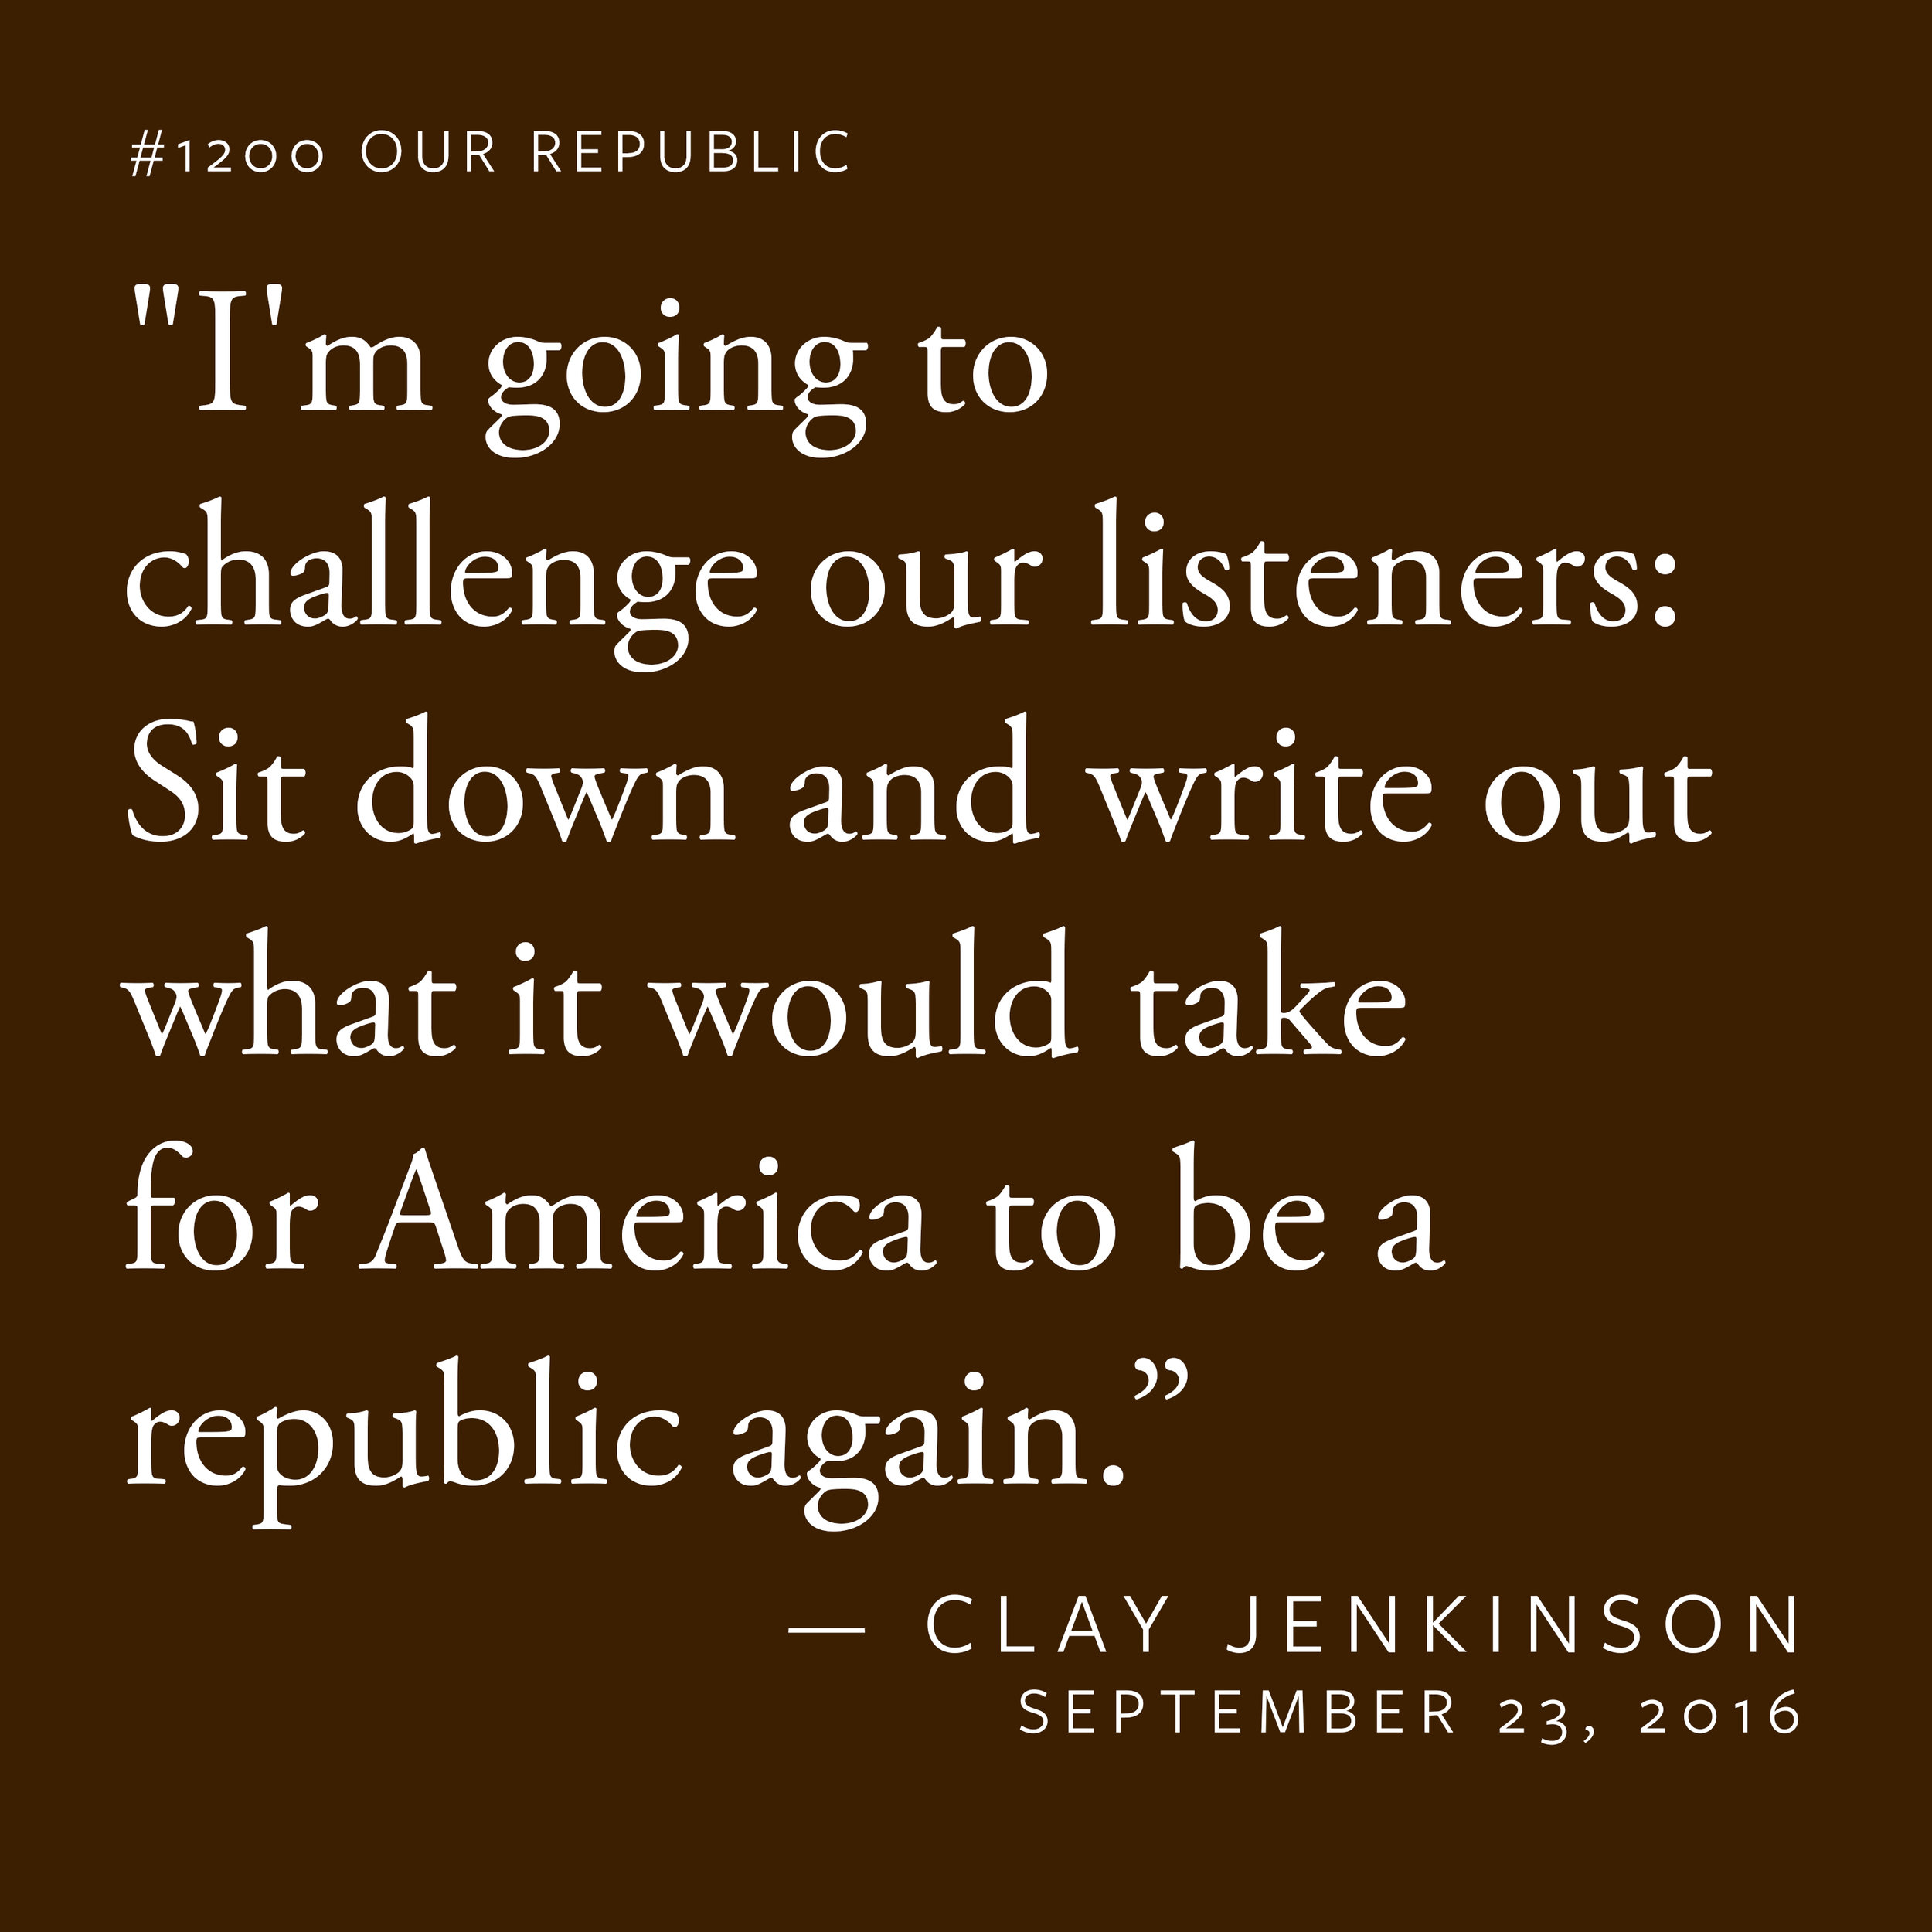 """""""I'm going to challenge our listeners: Sit down and write out what it would take for America to be a republic again. Write that list out to your own satisfaction and send it to us."""""""